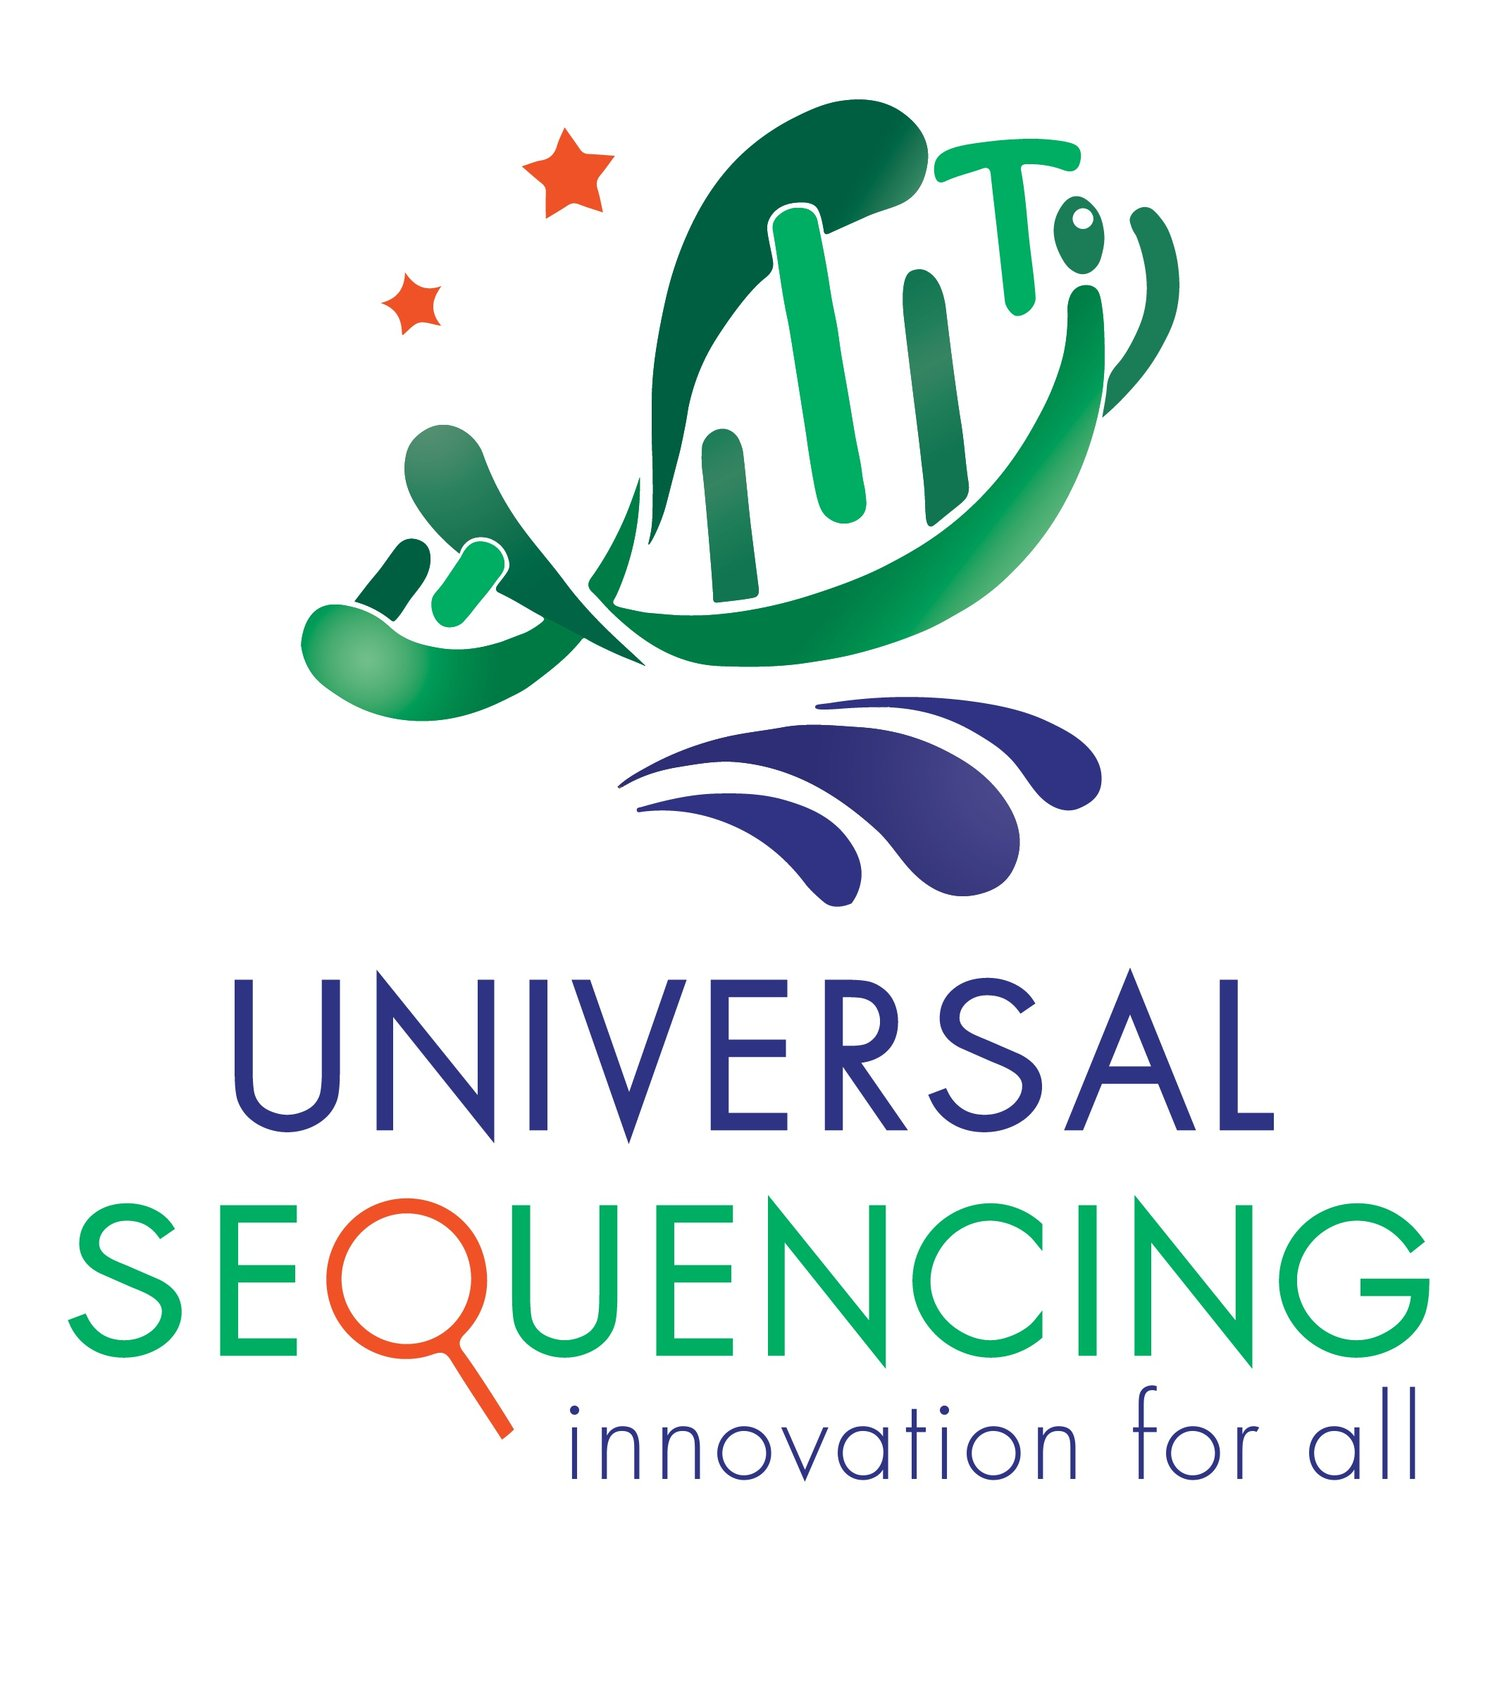 UNIVERSAL SEQUENCING